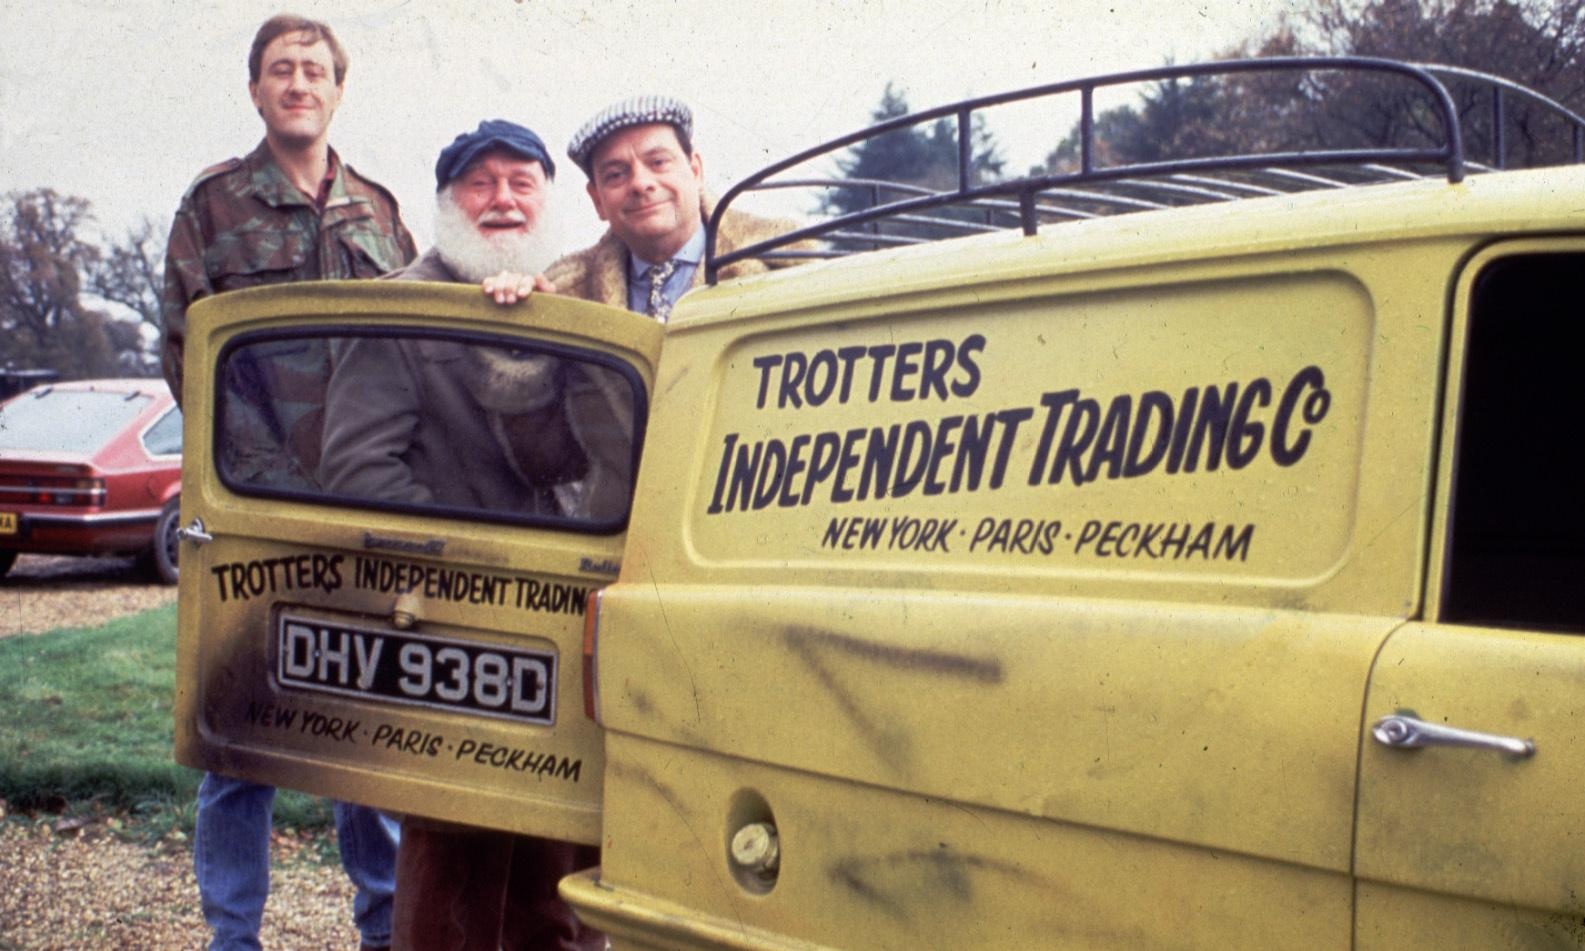 Do we need an Only Fools and Horses musical? Of course we do, you plonker!